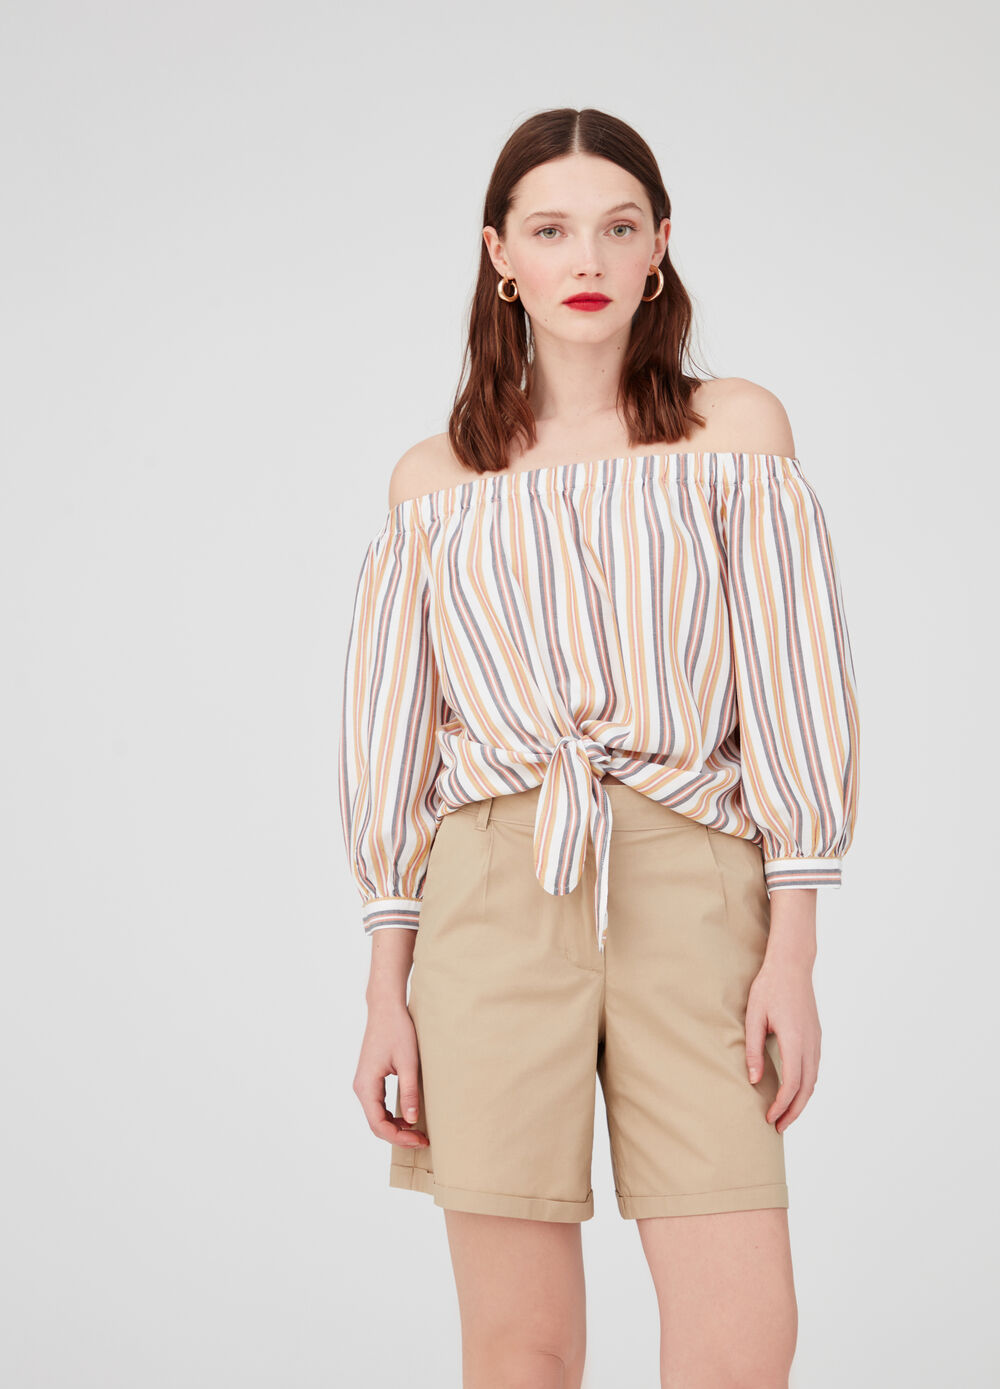 Blouse with drop shoulder and striped pattern